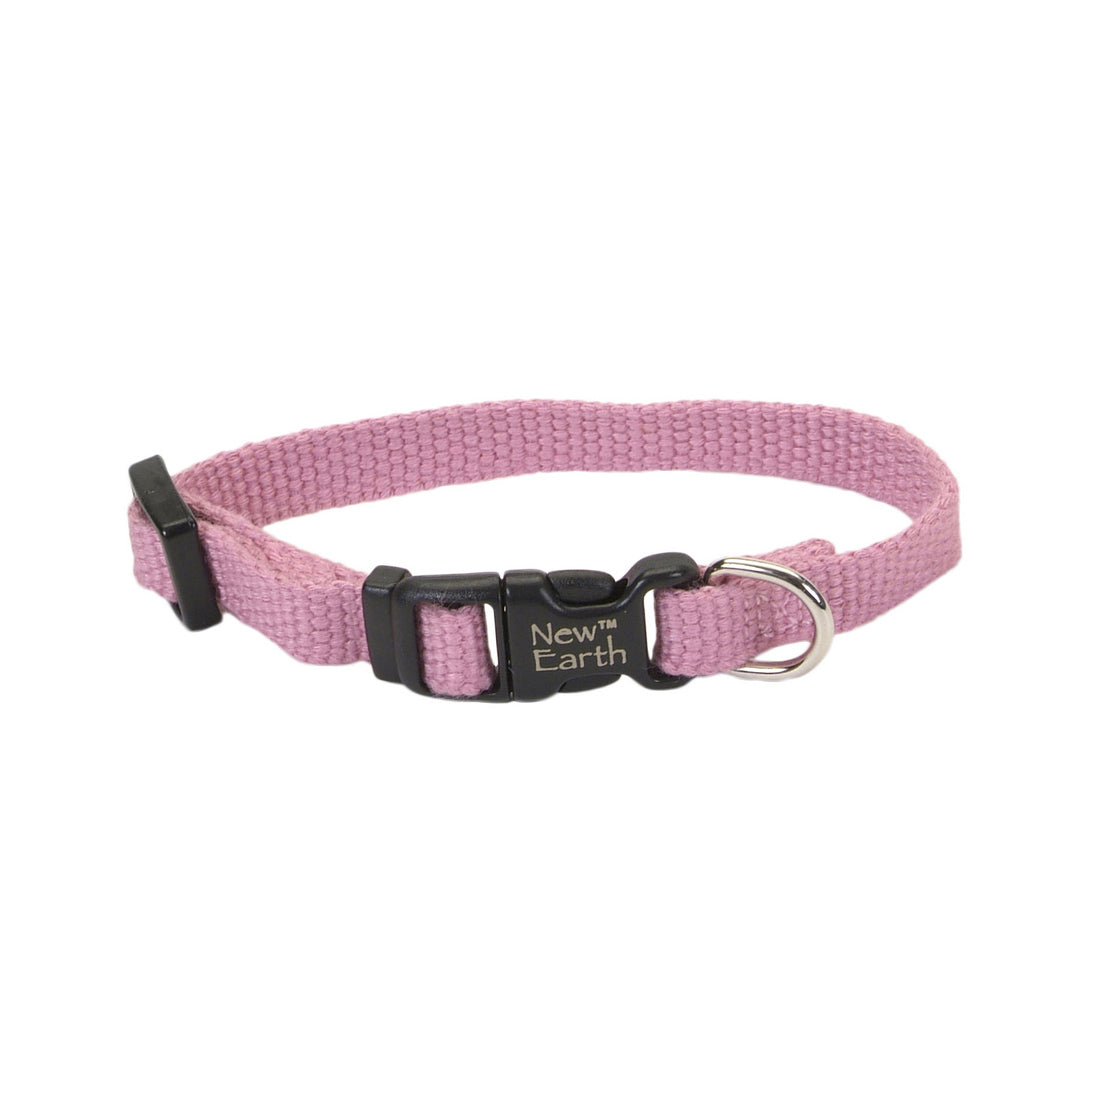 "Coastal Soy Adjustable Collar 18-26"" - 1"" Rose"